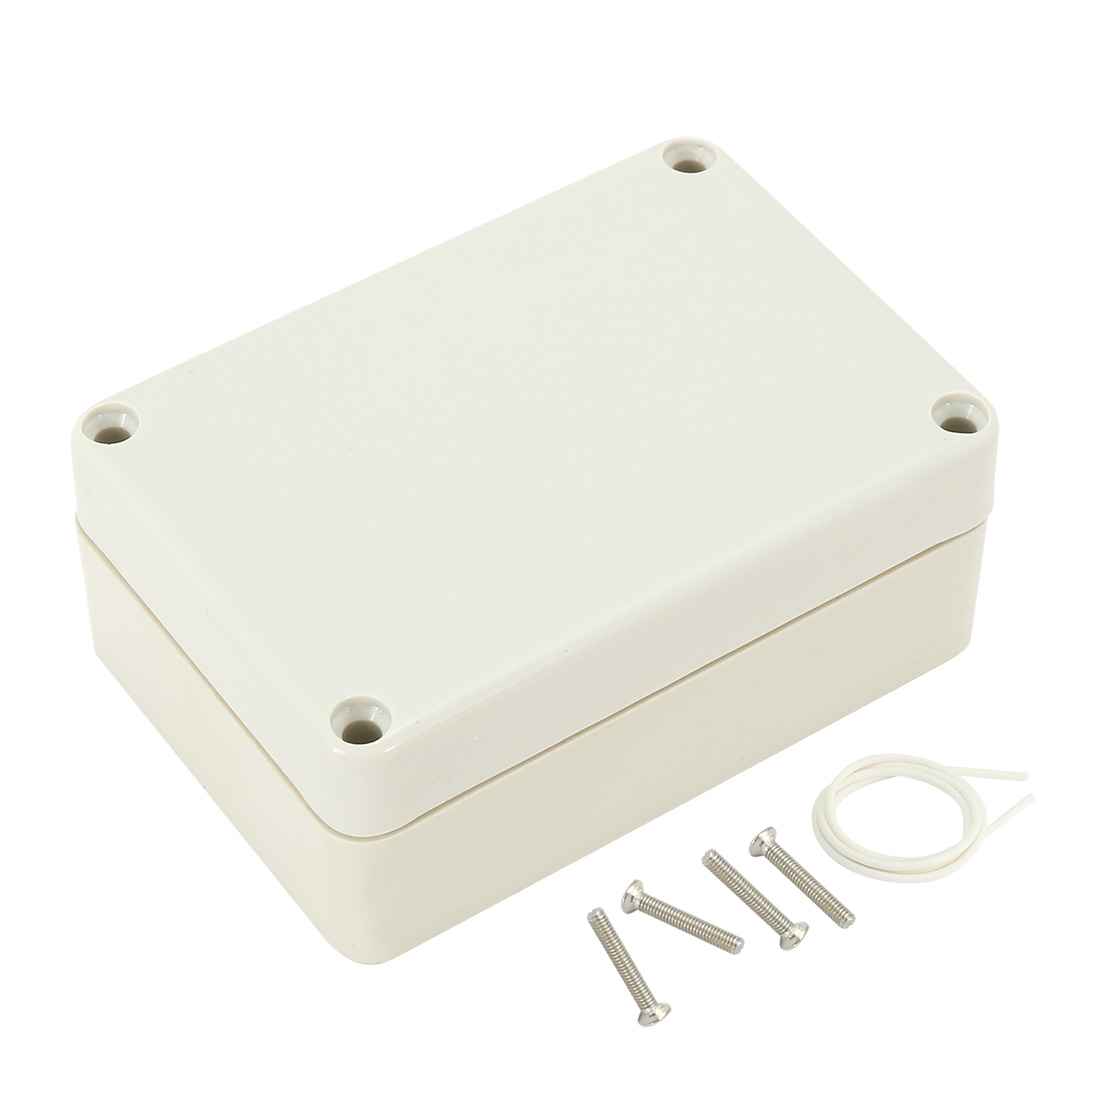 """3.3""""x2.3""""x1.3""""(83mmx58mmx33mm) ABS Junction Box Universal Electric Project Enclosure"""